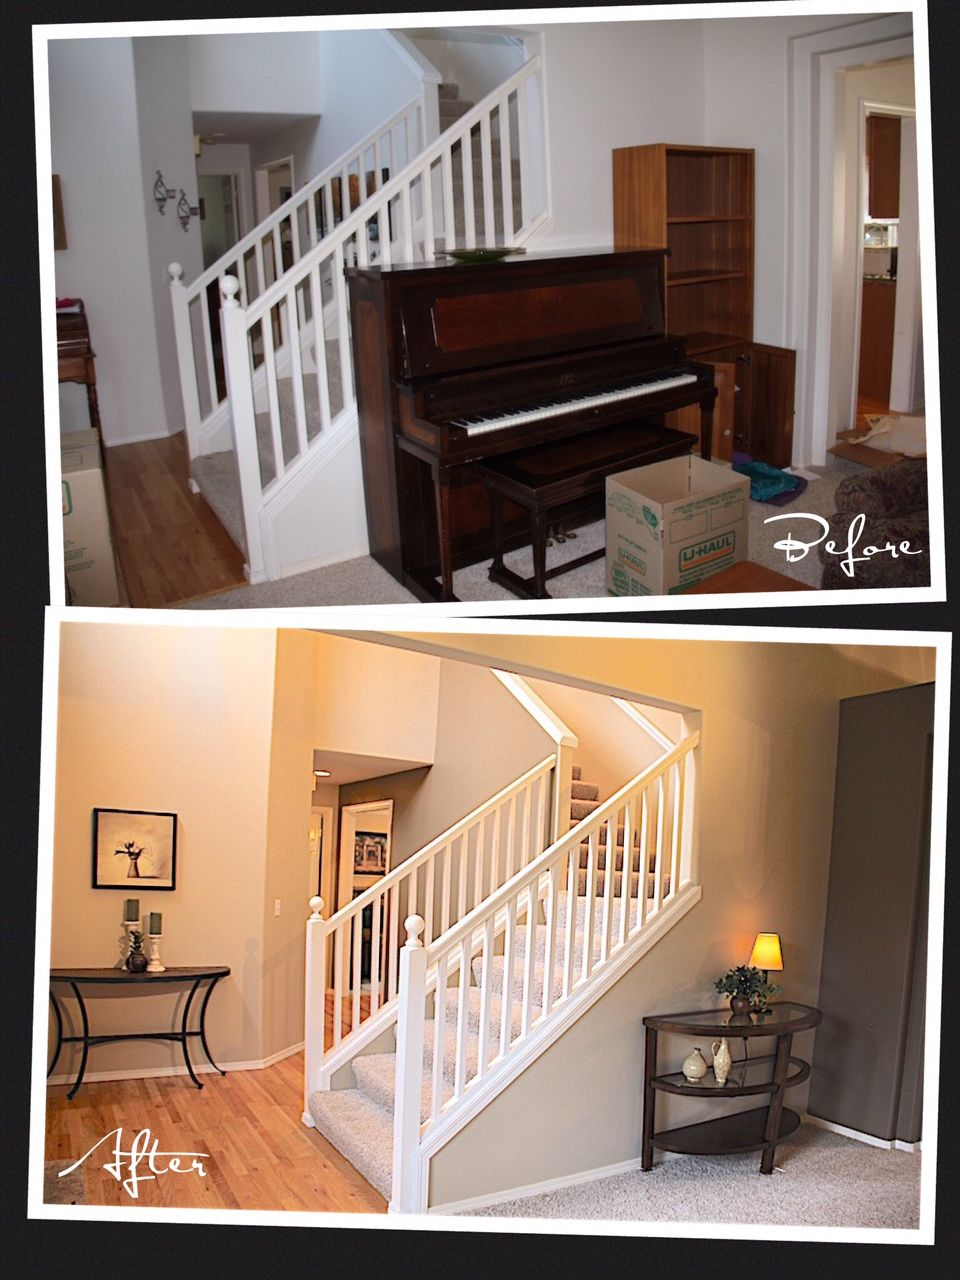 Although pianos are an excellent decorative element, it often happens that houses do not have the space suitable for them. The result is a room crammed with furniture and with little flow. If the seller doesn't use the piano on a daily basis and can live without it for a few weeks, then it is recommended to remove it to make the house more spacious and attractive.